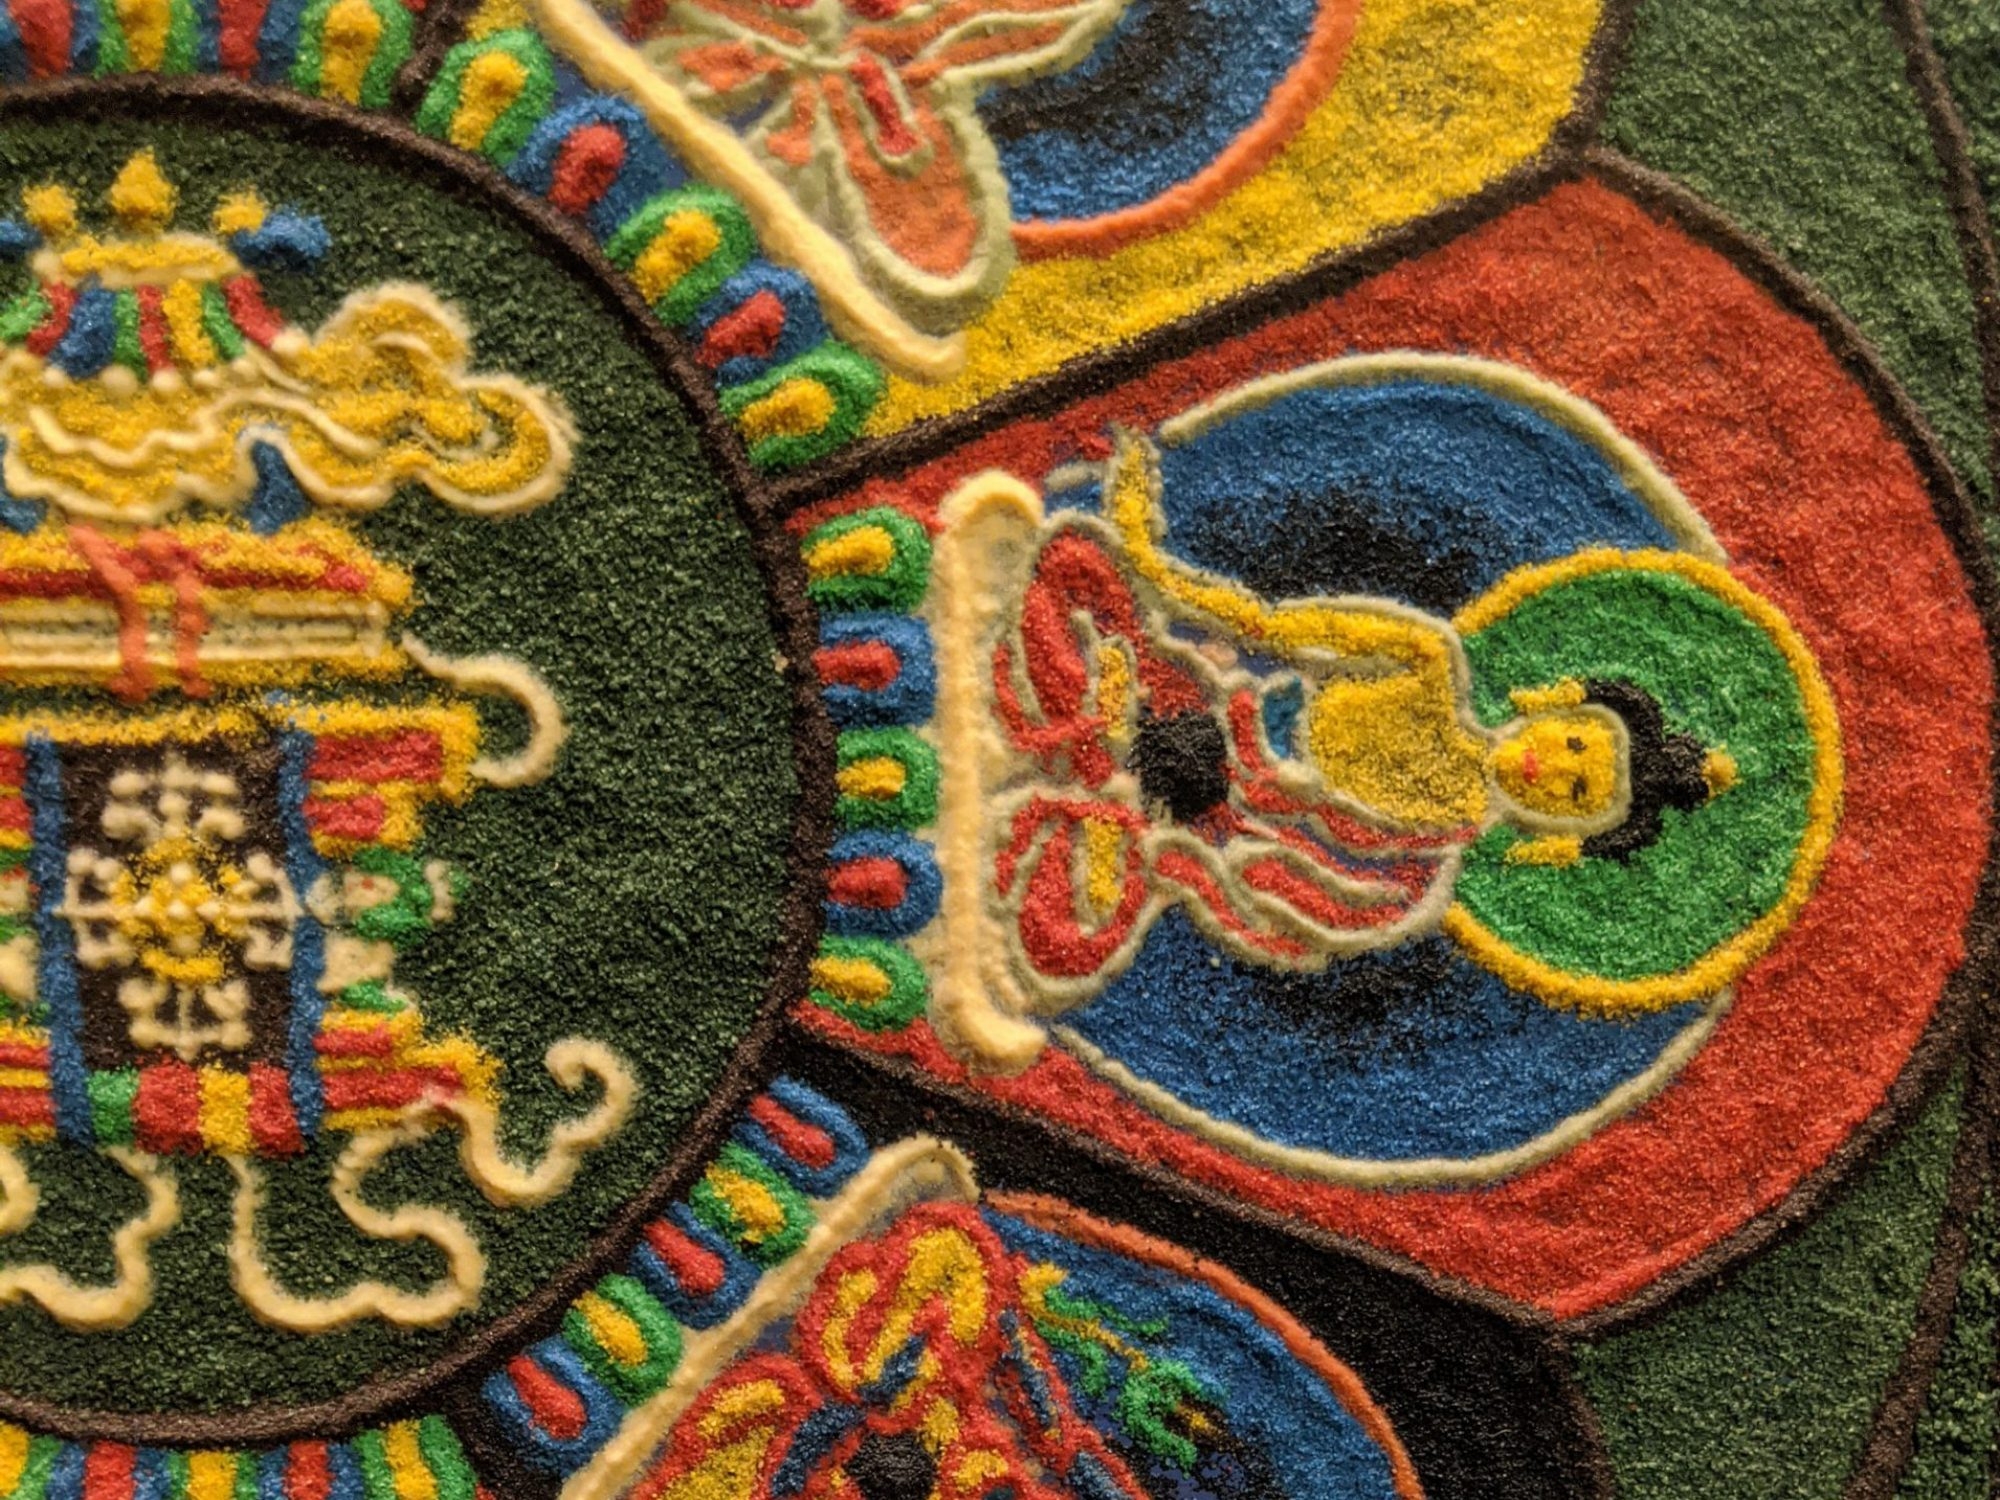 A close up of a picture made of sand. It looks like petals around a central pattern, with small figures of buddha sat in each petal.